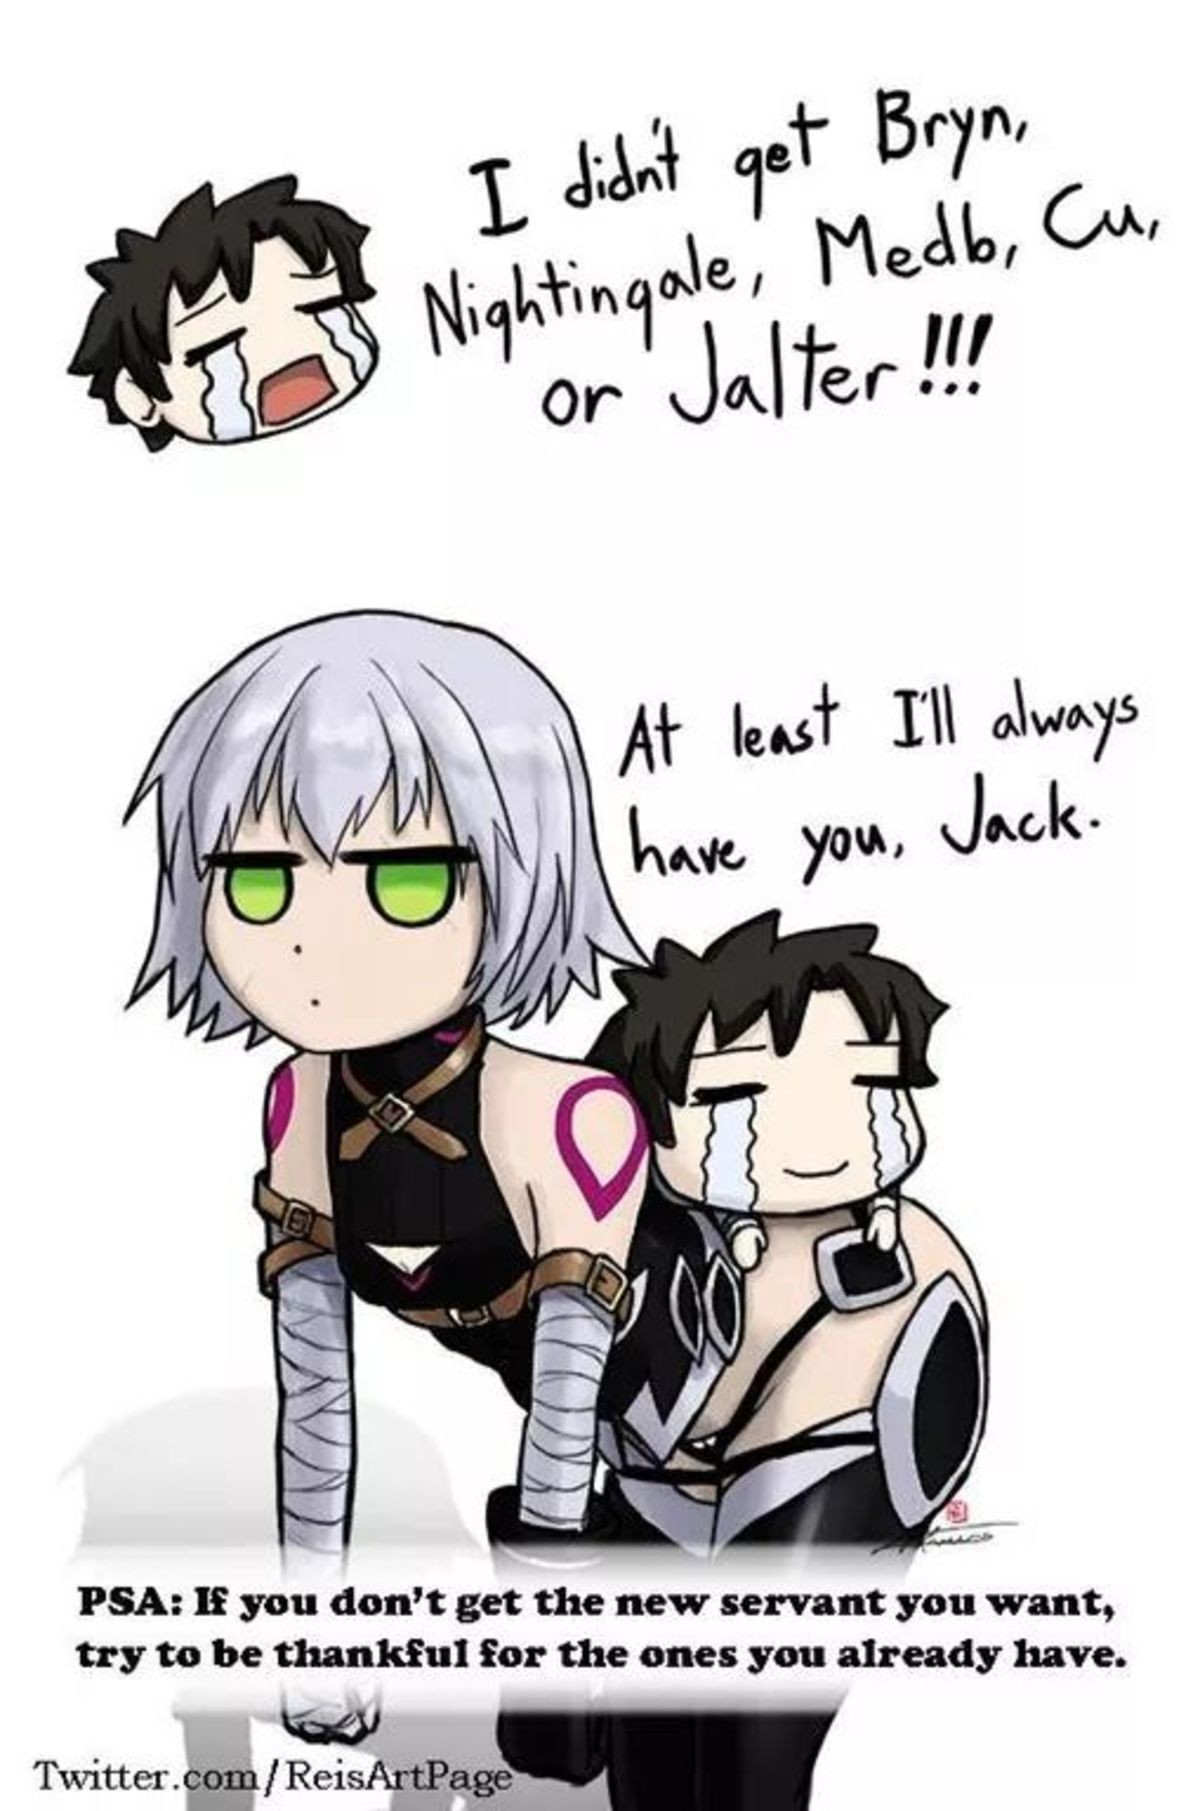 I Don't Have Jack Either.... join list: Lewds4DHeart (1610 subs)Mention History join list:. I got hercules and waver from my failed jalter rolls